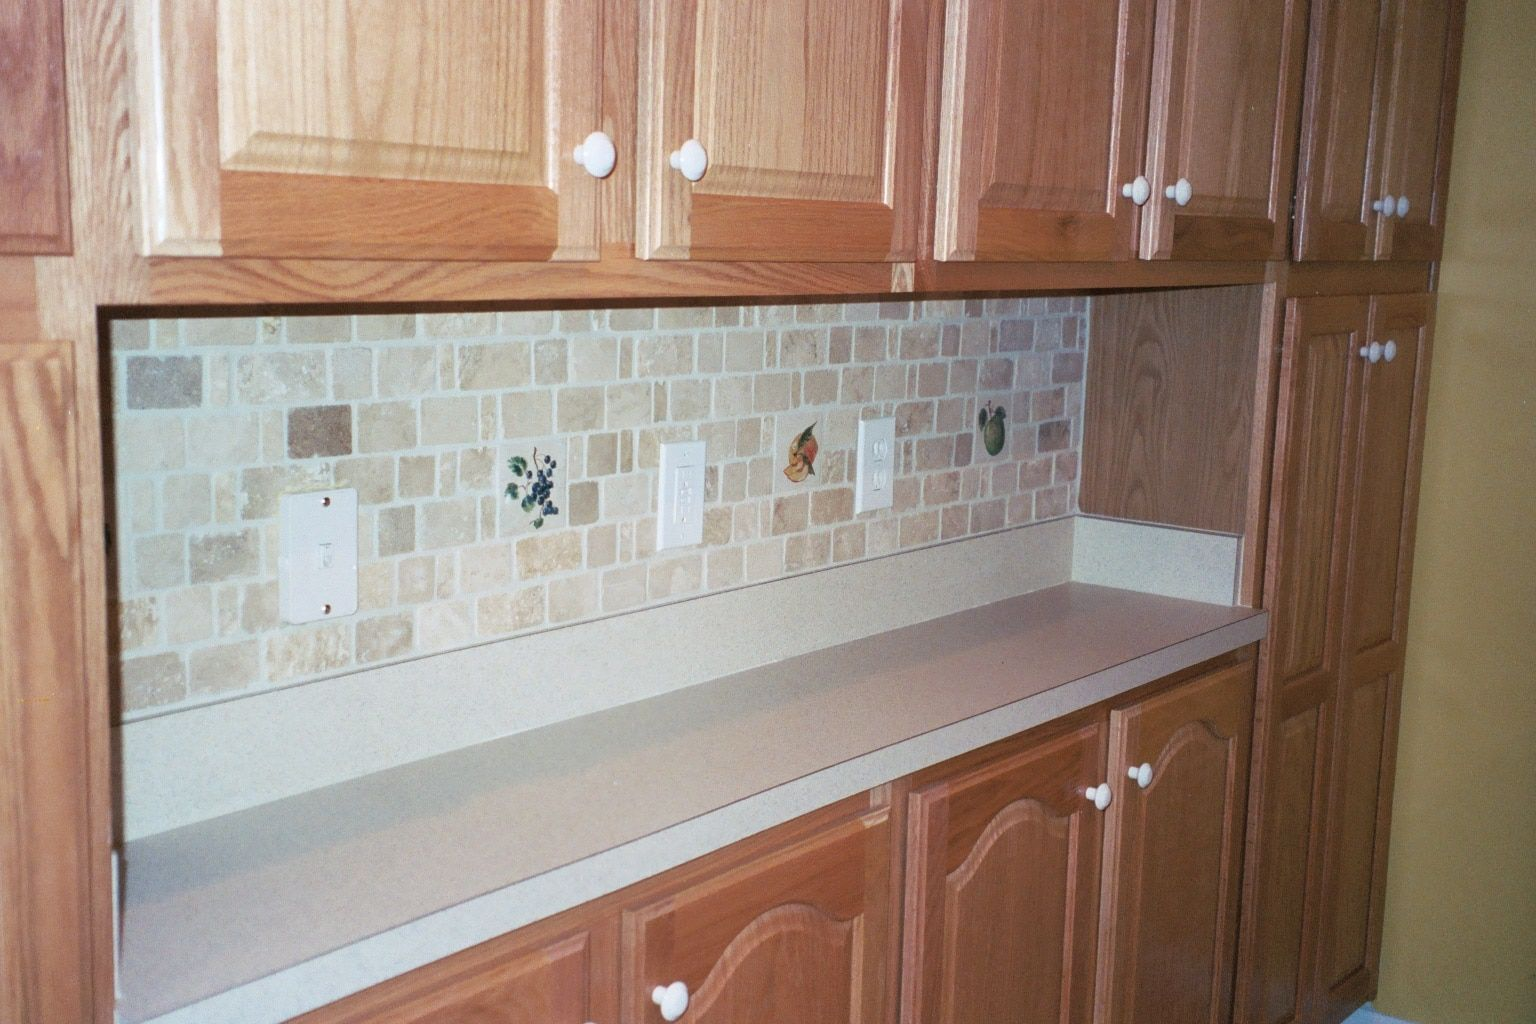 - How To Choose The Back-splash And Tile That Are Right For Your